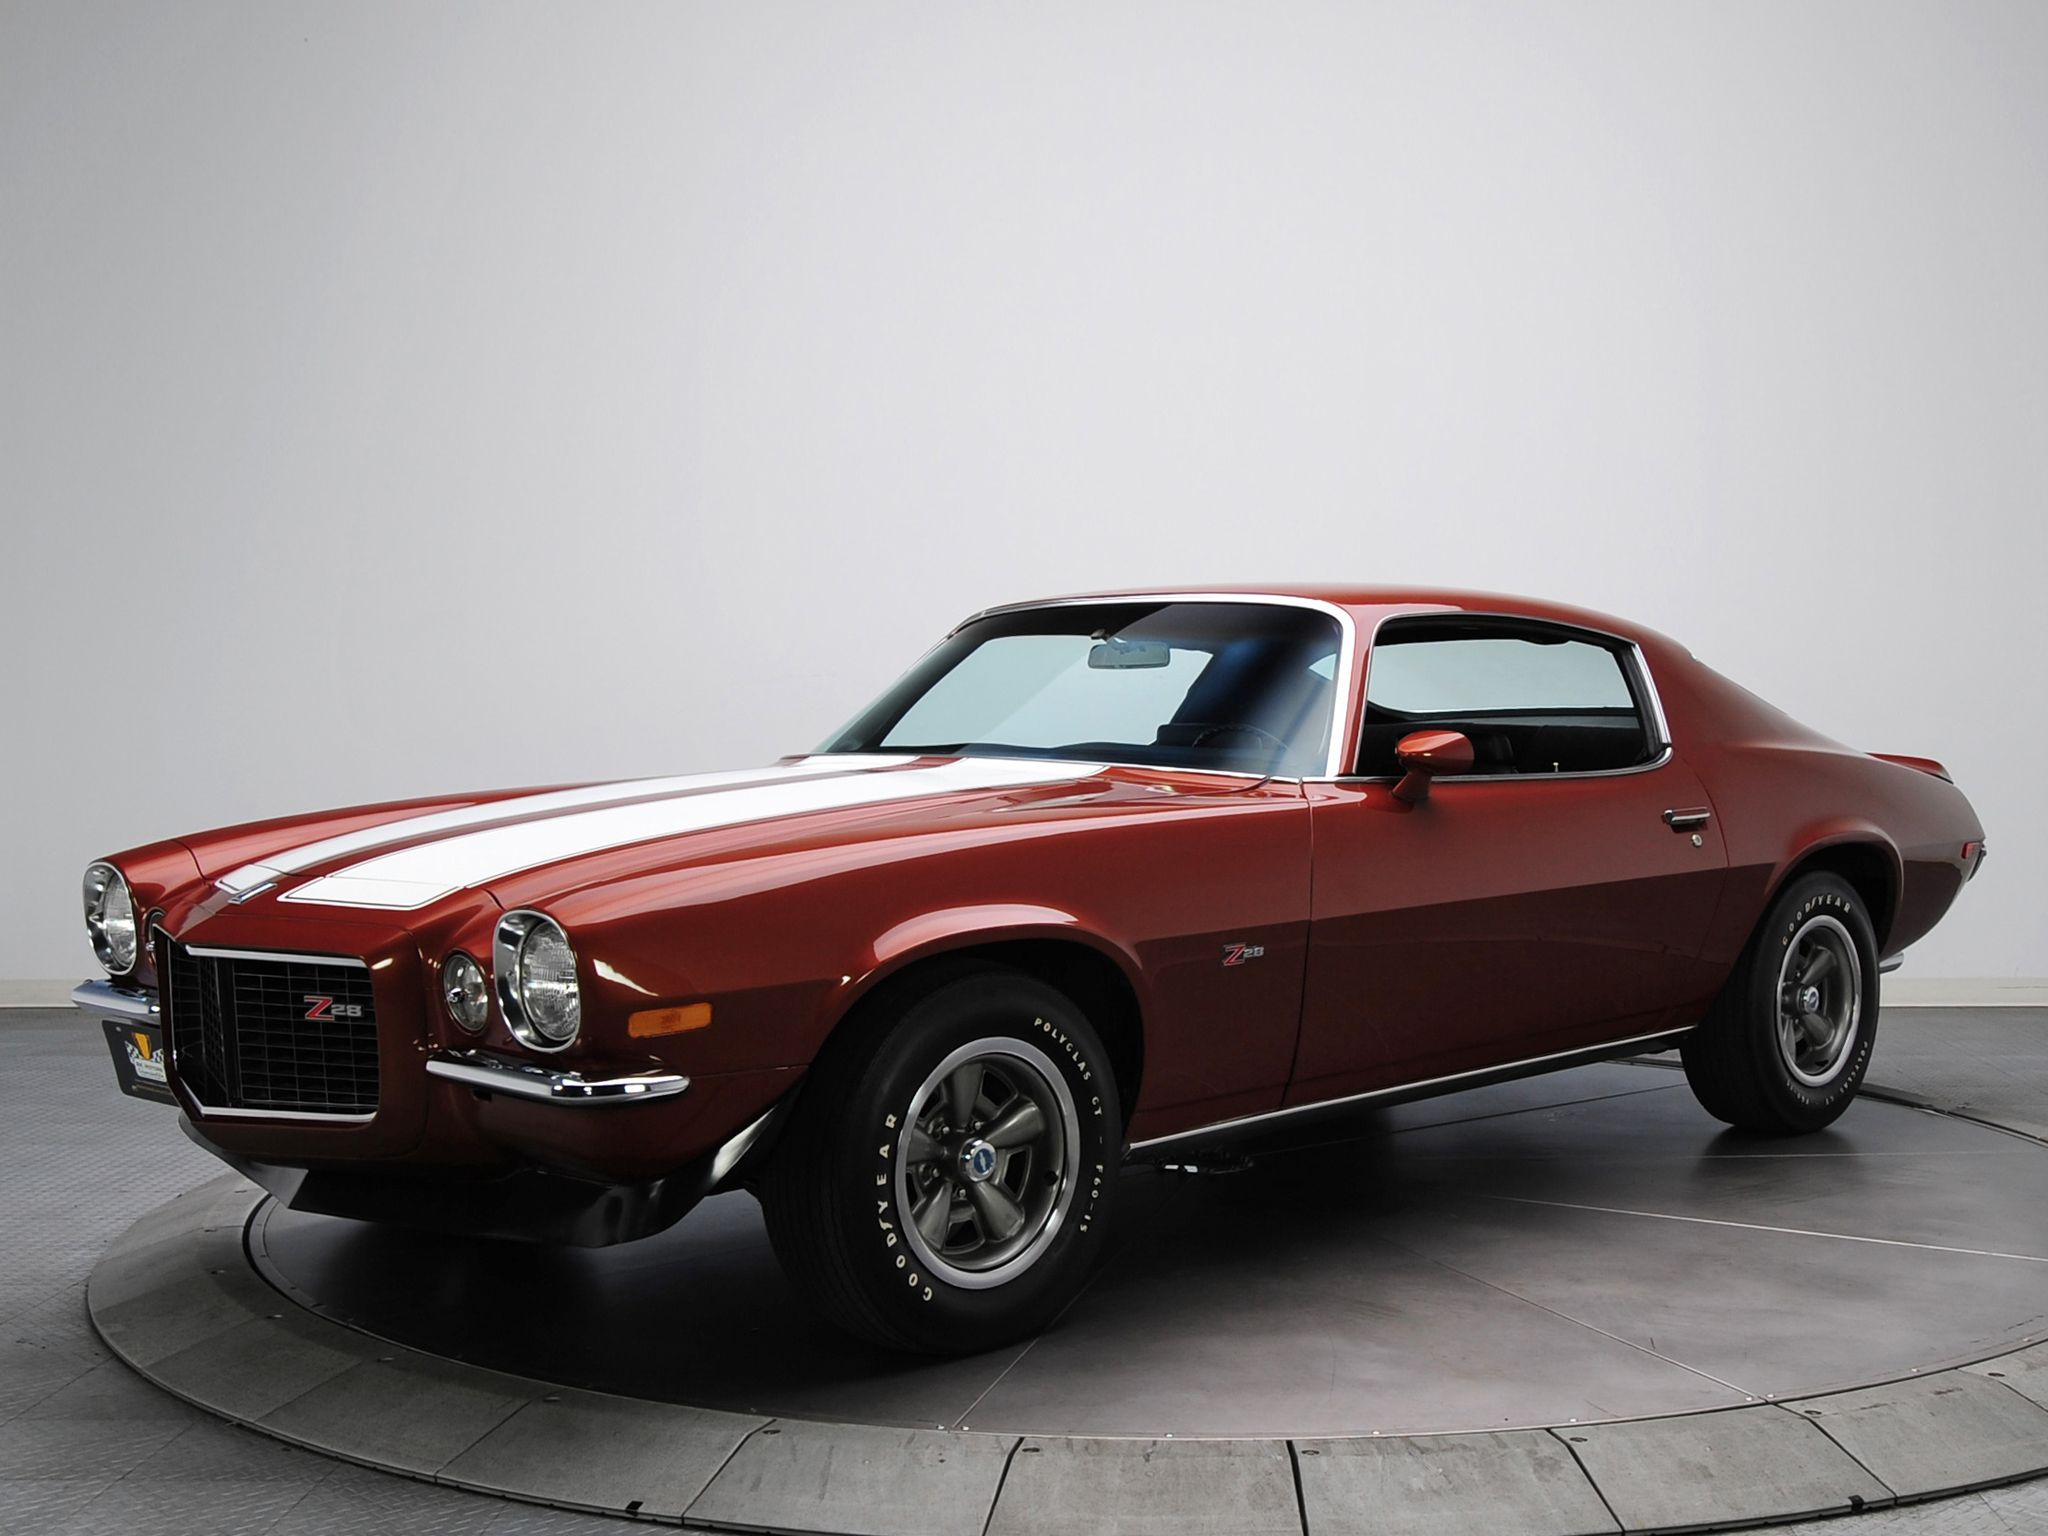 Chevrolet wallpapers chevrolet camaro ii generation 1970 for Classic american muscle cars